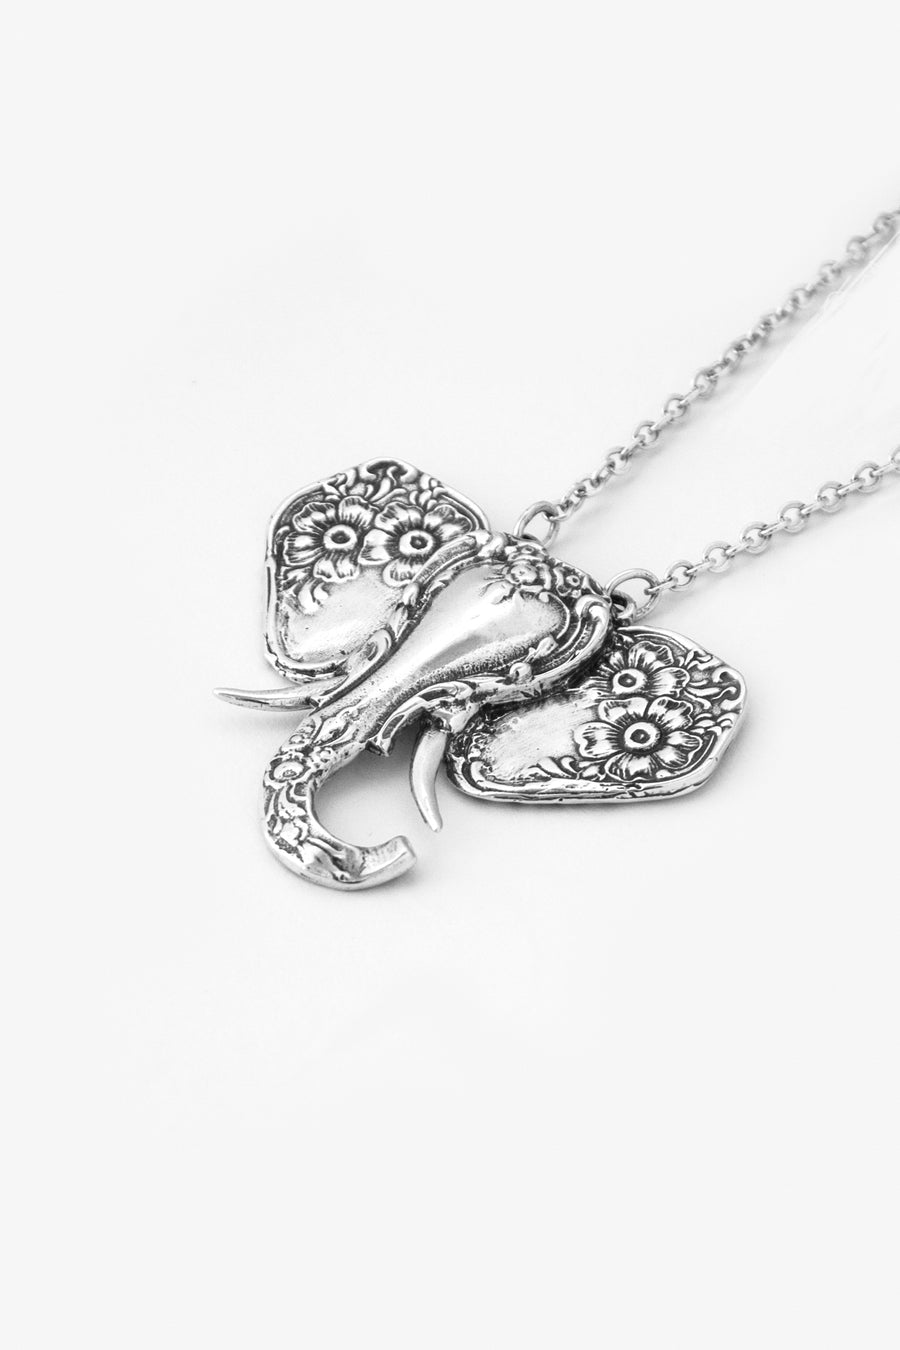 Elephant Sterling Silver Necklace - Silver Spoon Jewelry